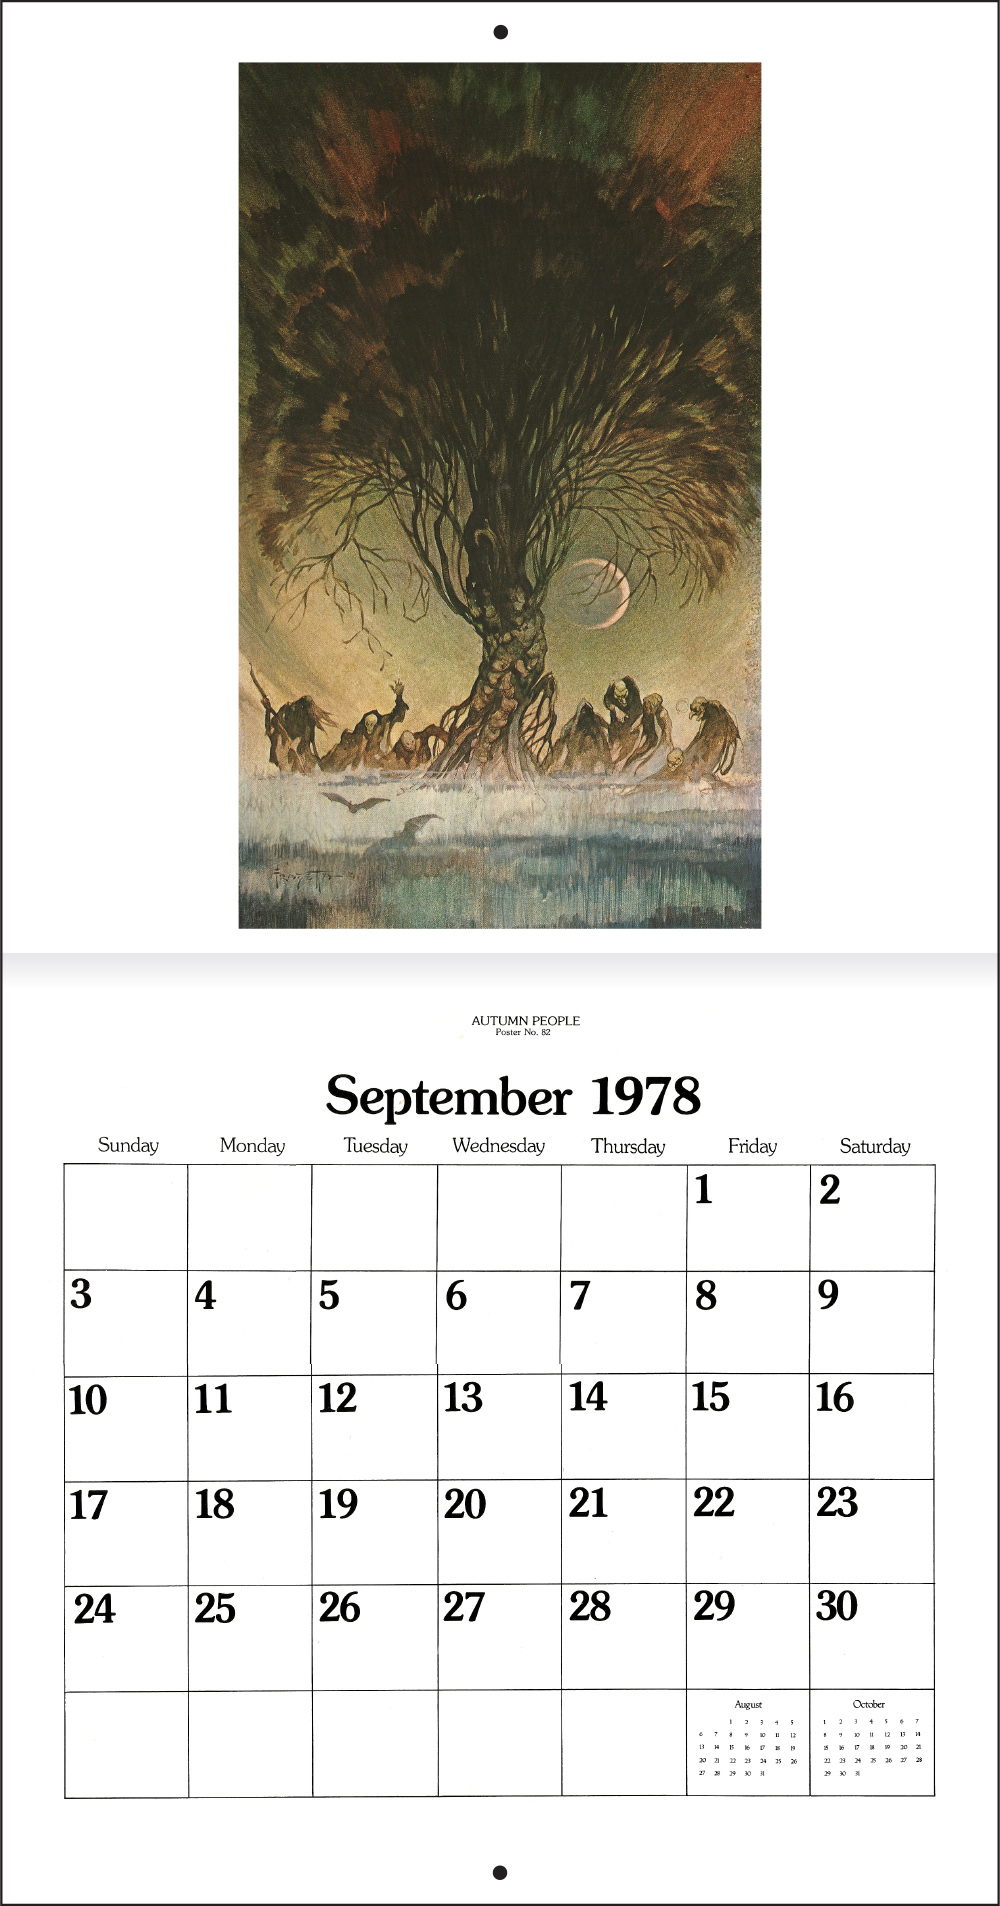 1978 Calendar September.The Frank Frazetta Calendar 1978 Tain T The Meat It S The Humanity